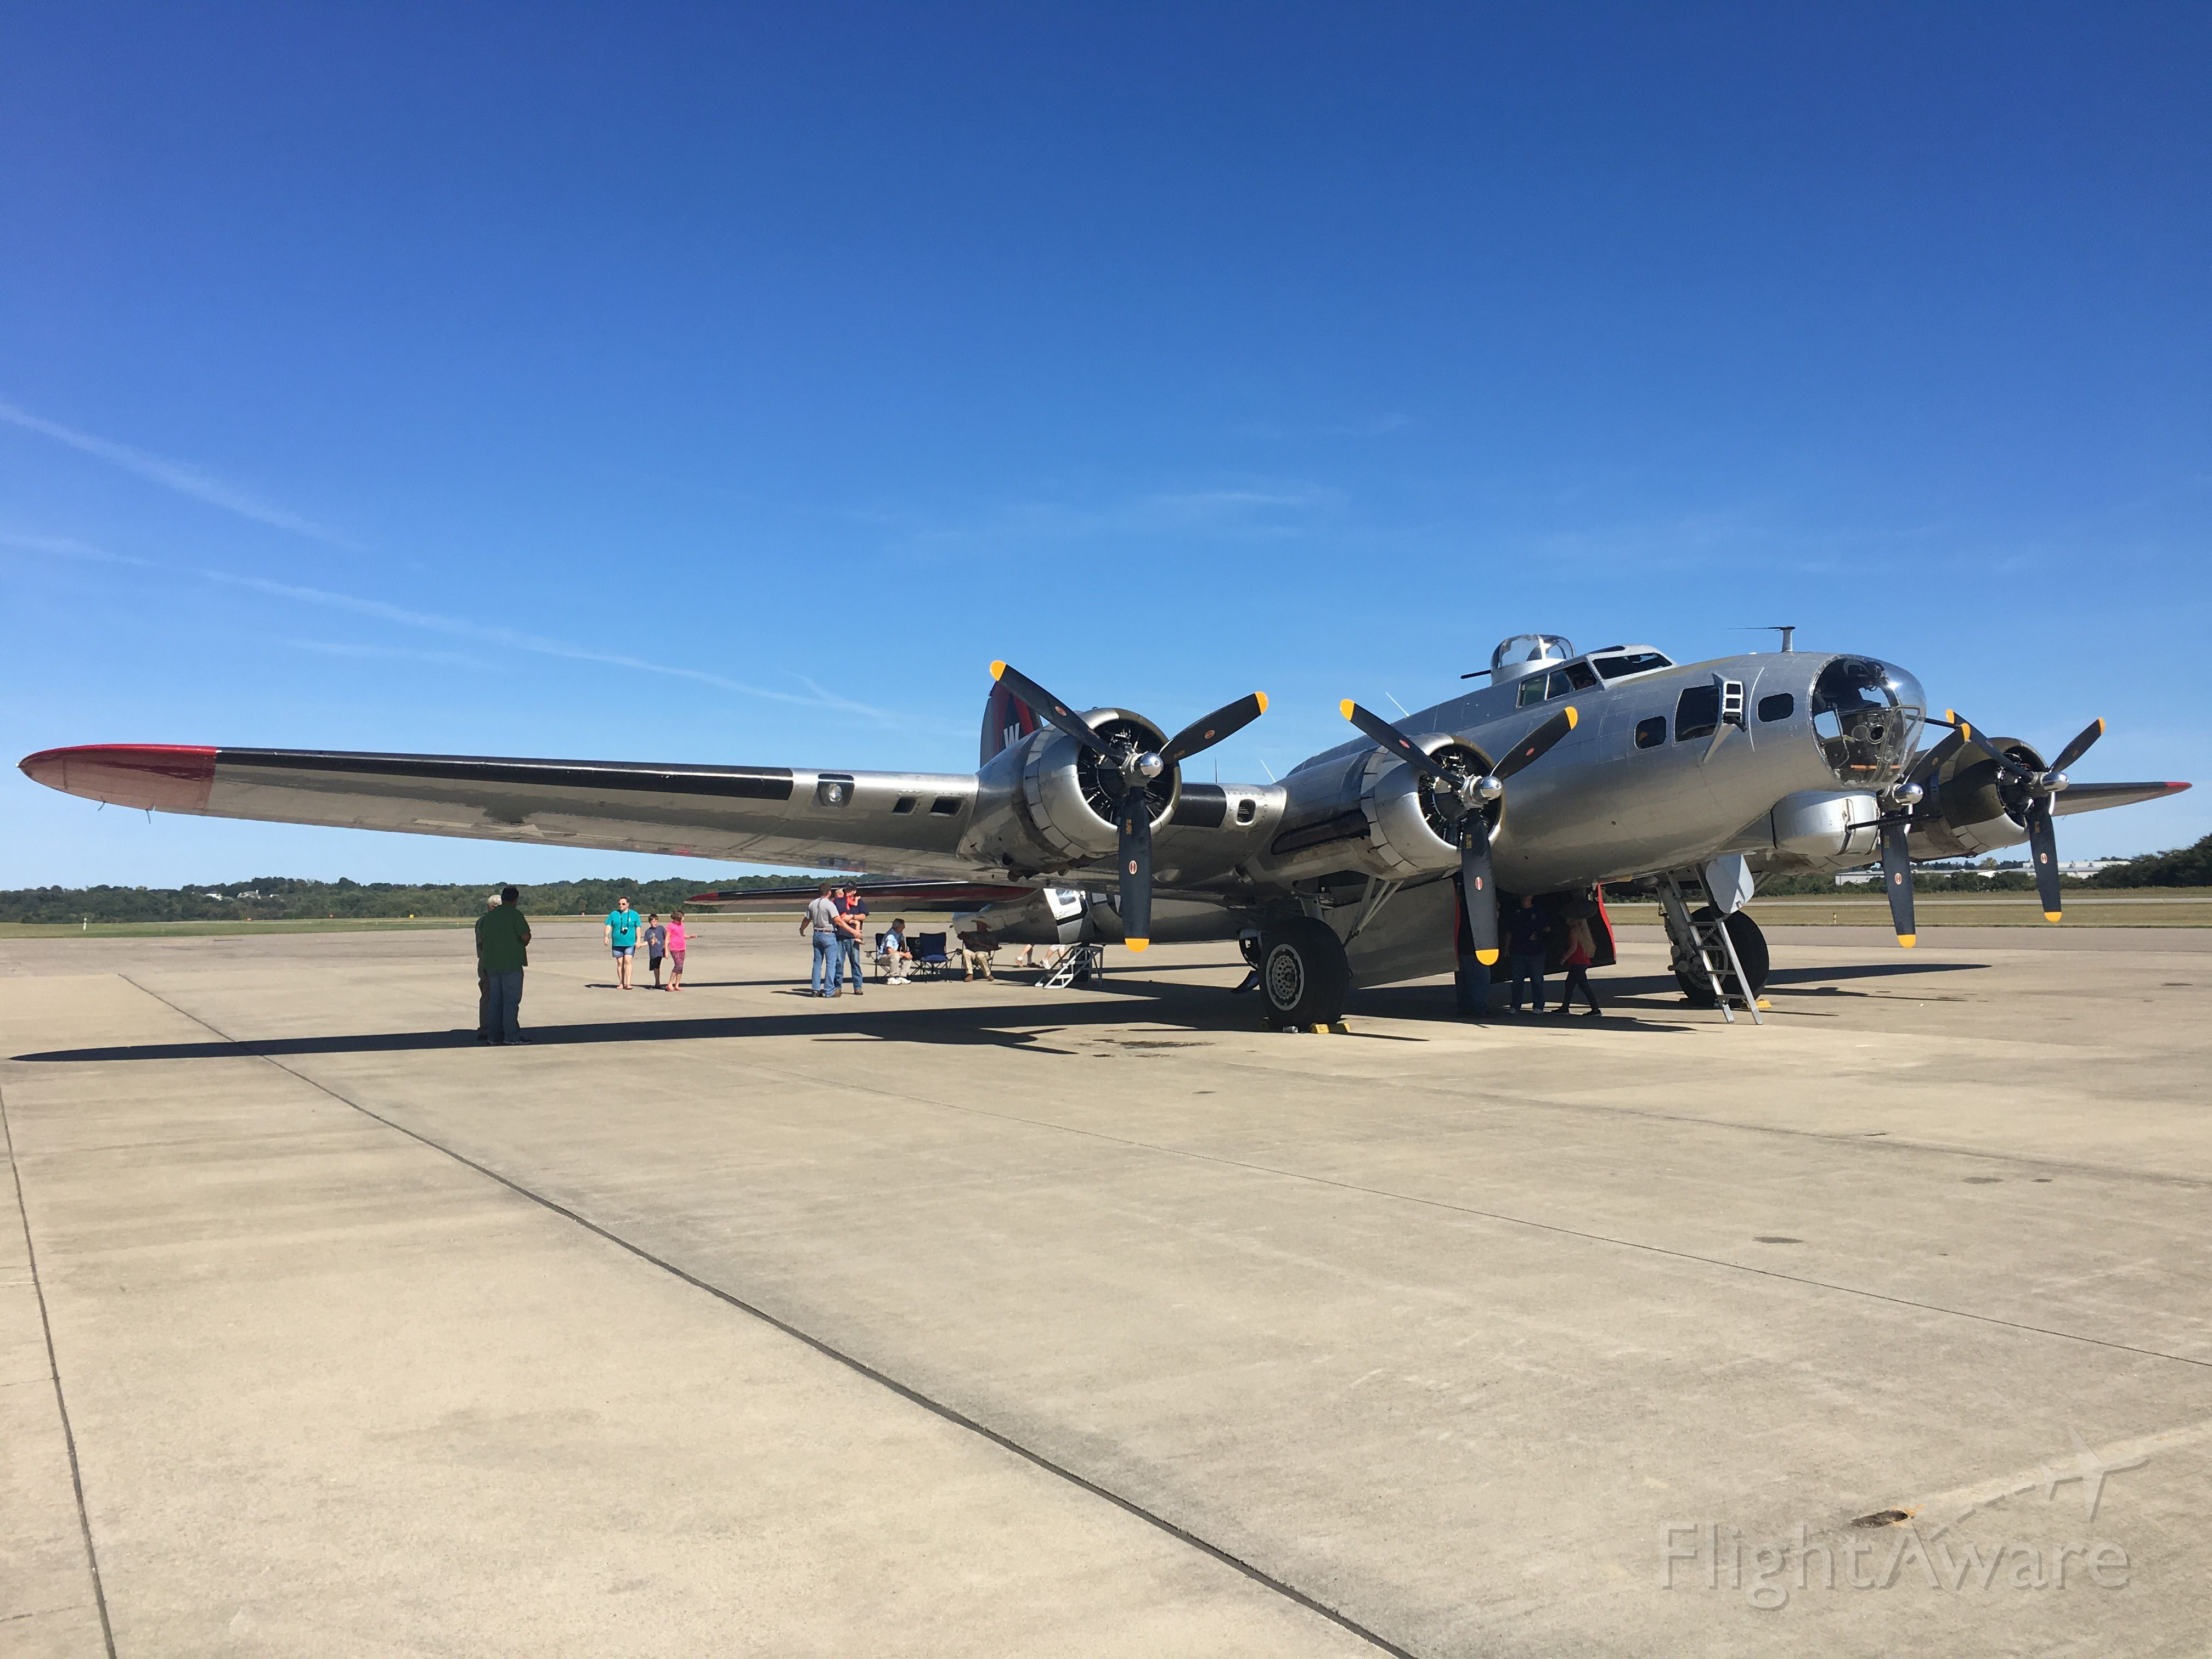 — — - Aluminum Overcast at Annual Fly-In and Cruise-In at Zanesville Municipal, Sep.t 24, 2016.